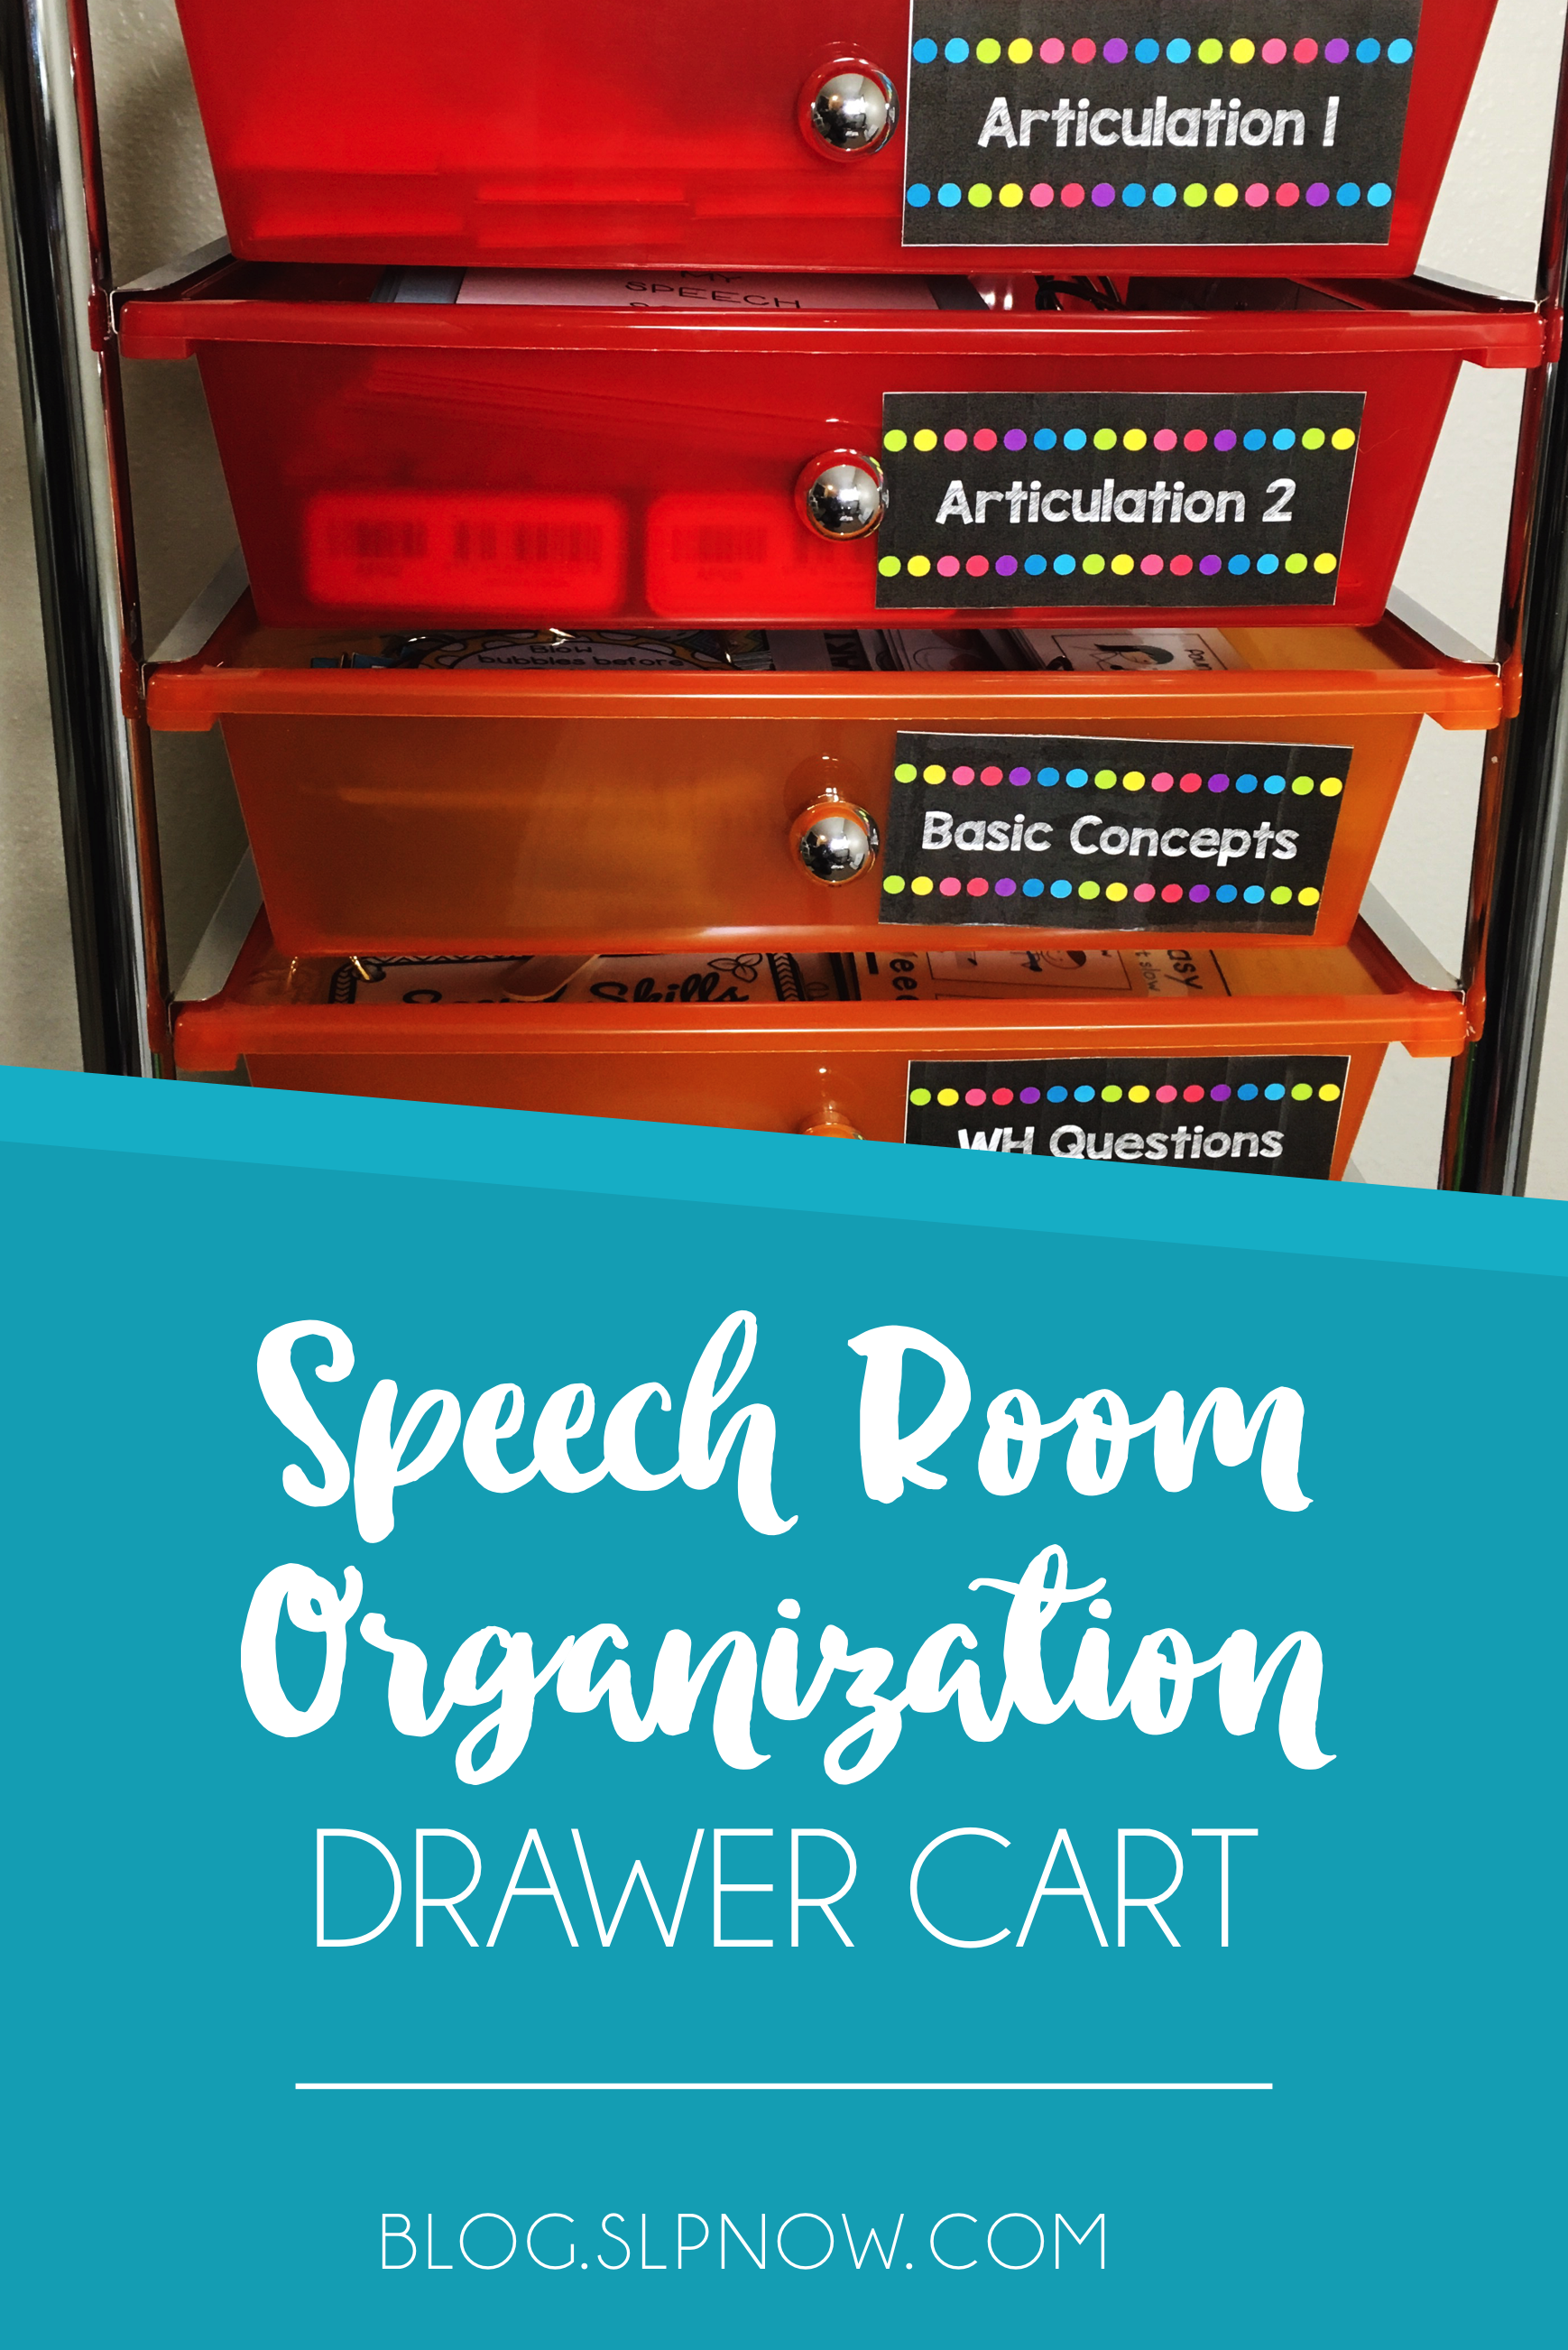 Drawer cards are a serious lifesaver in schools! I use my drawer cart for lots of different things, so I'm sharing all of my favorite speech room organization tips using a drawer cart in this post. Time to get organized!